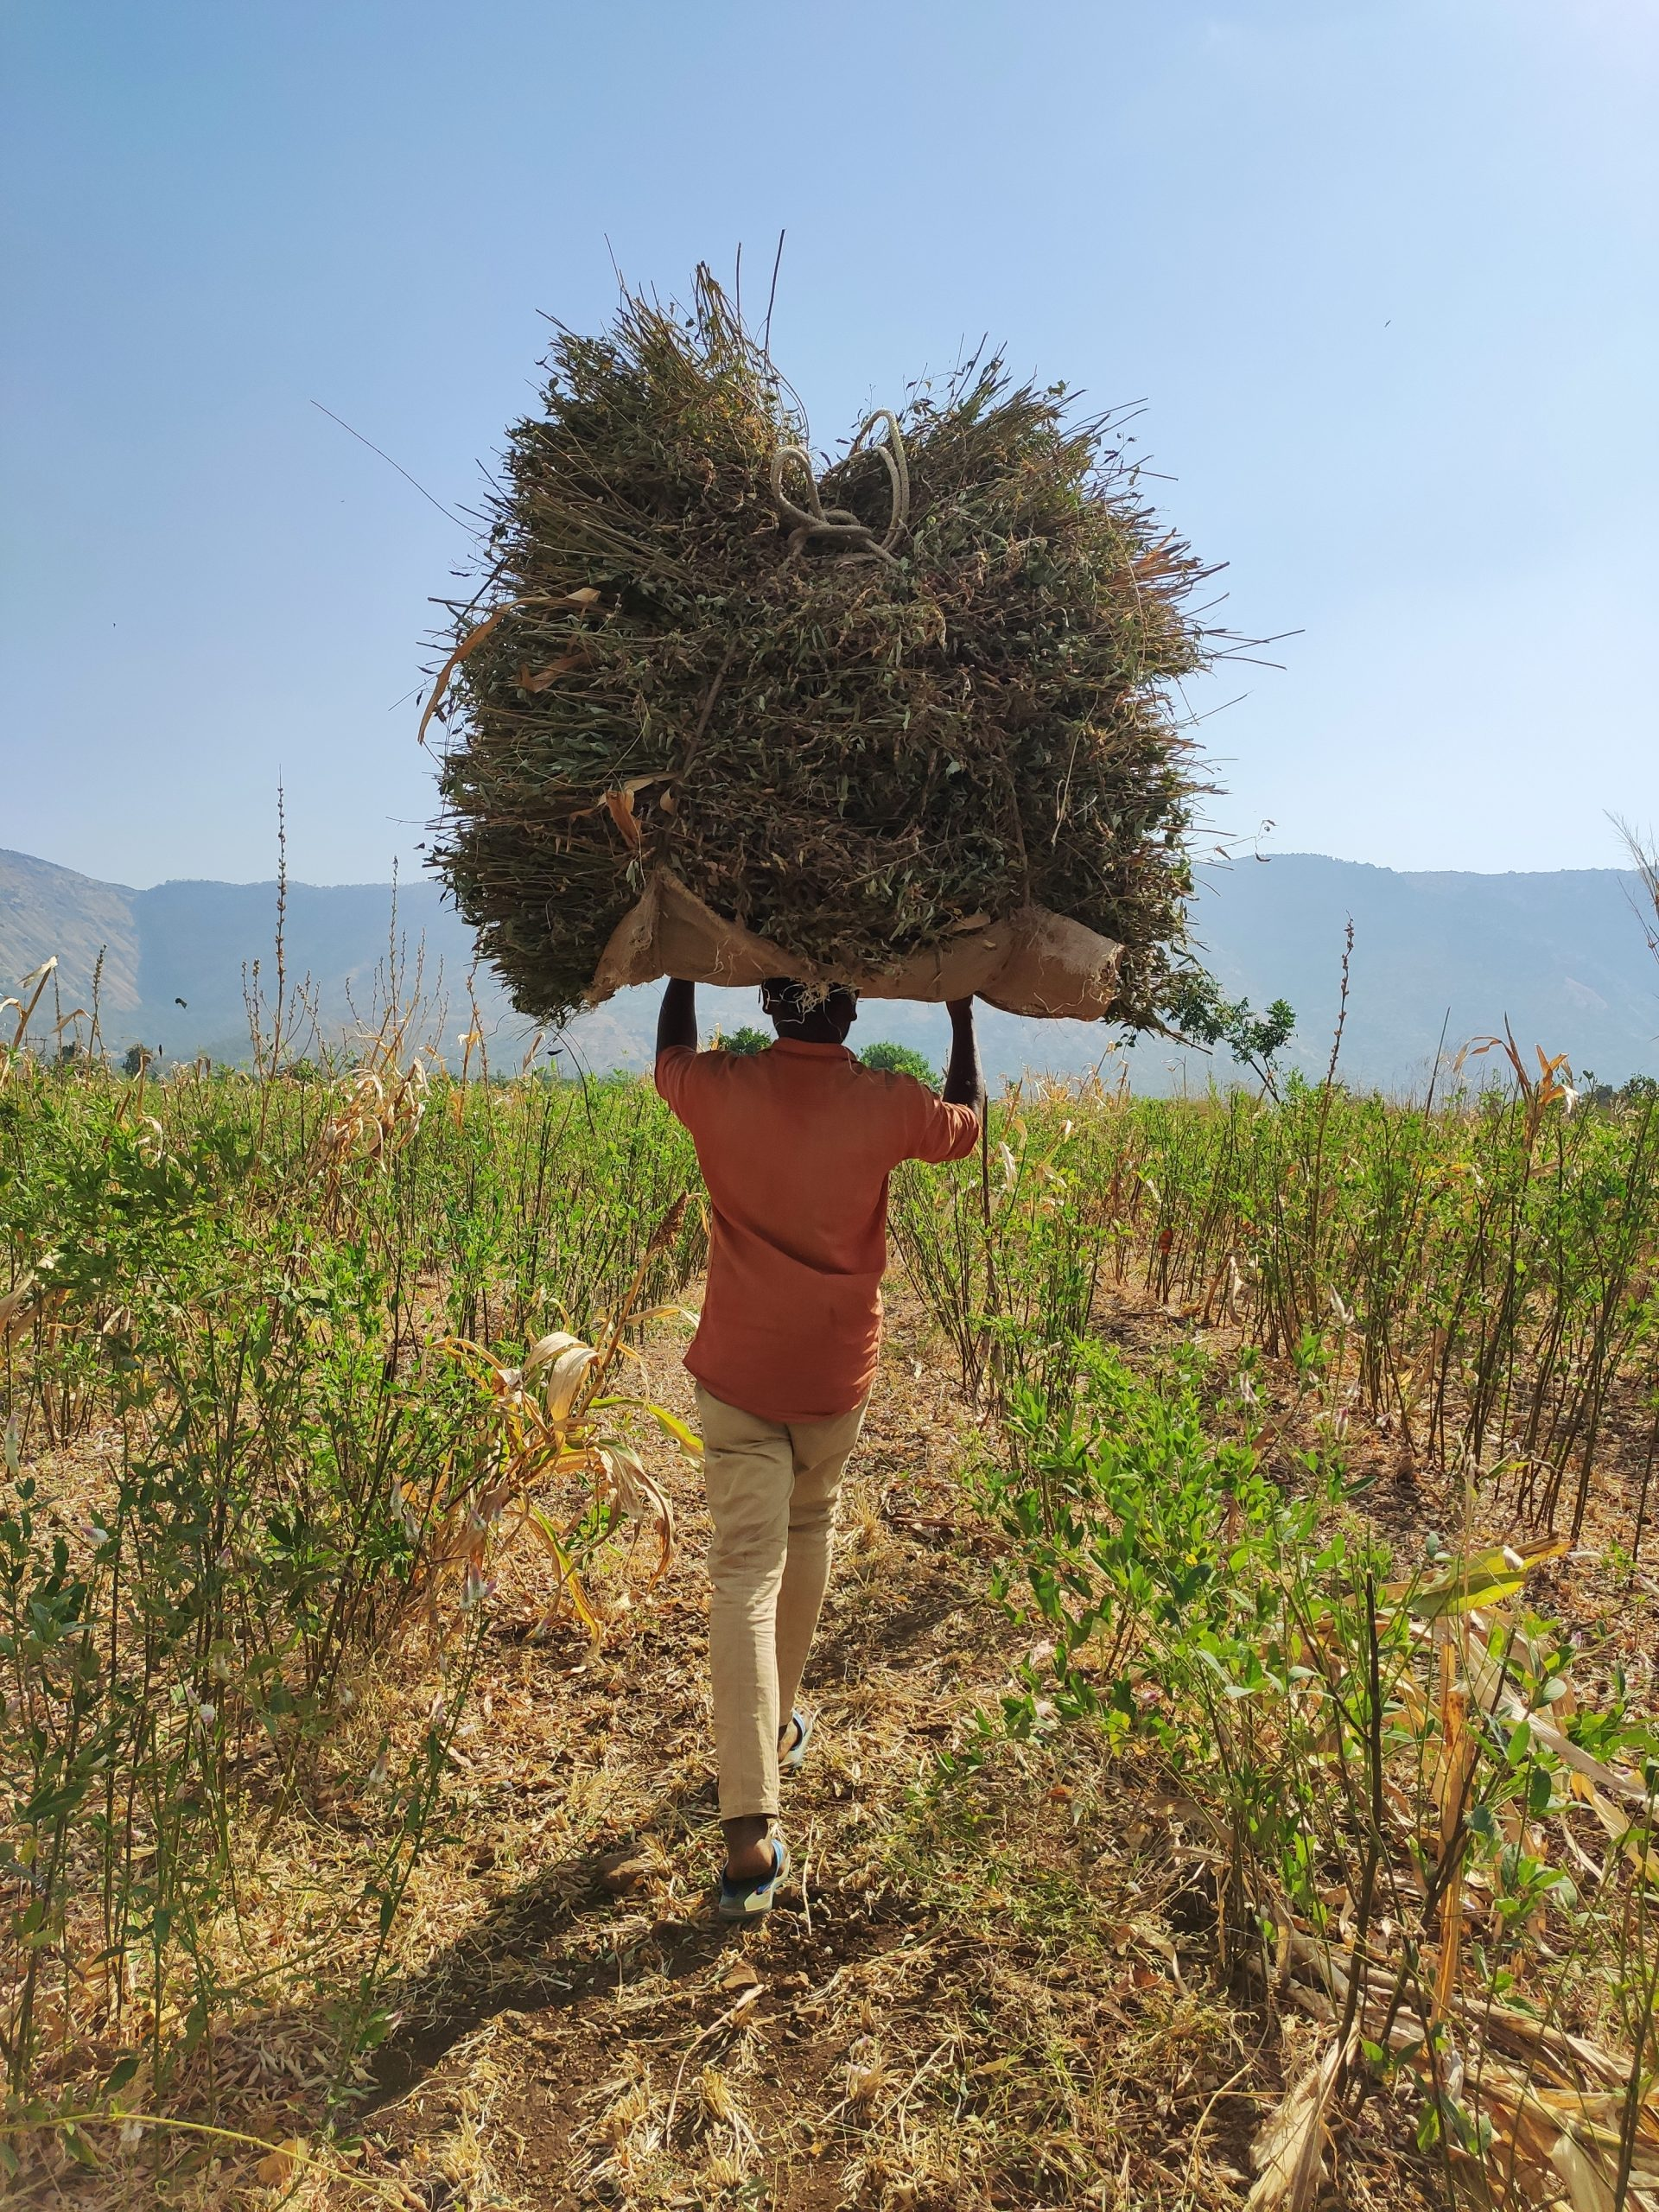 A farmer carrying a pile of grass